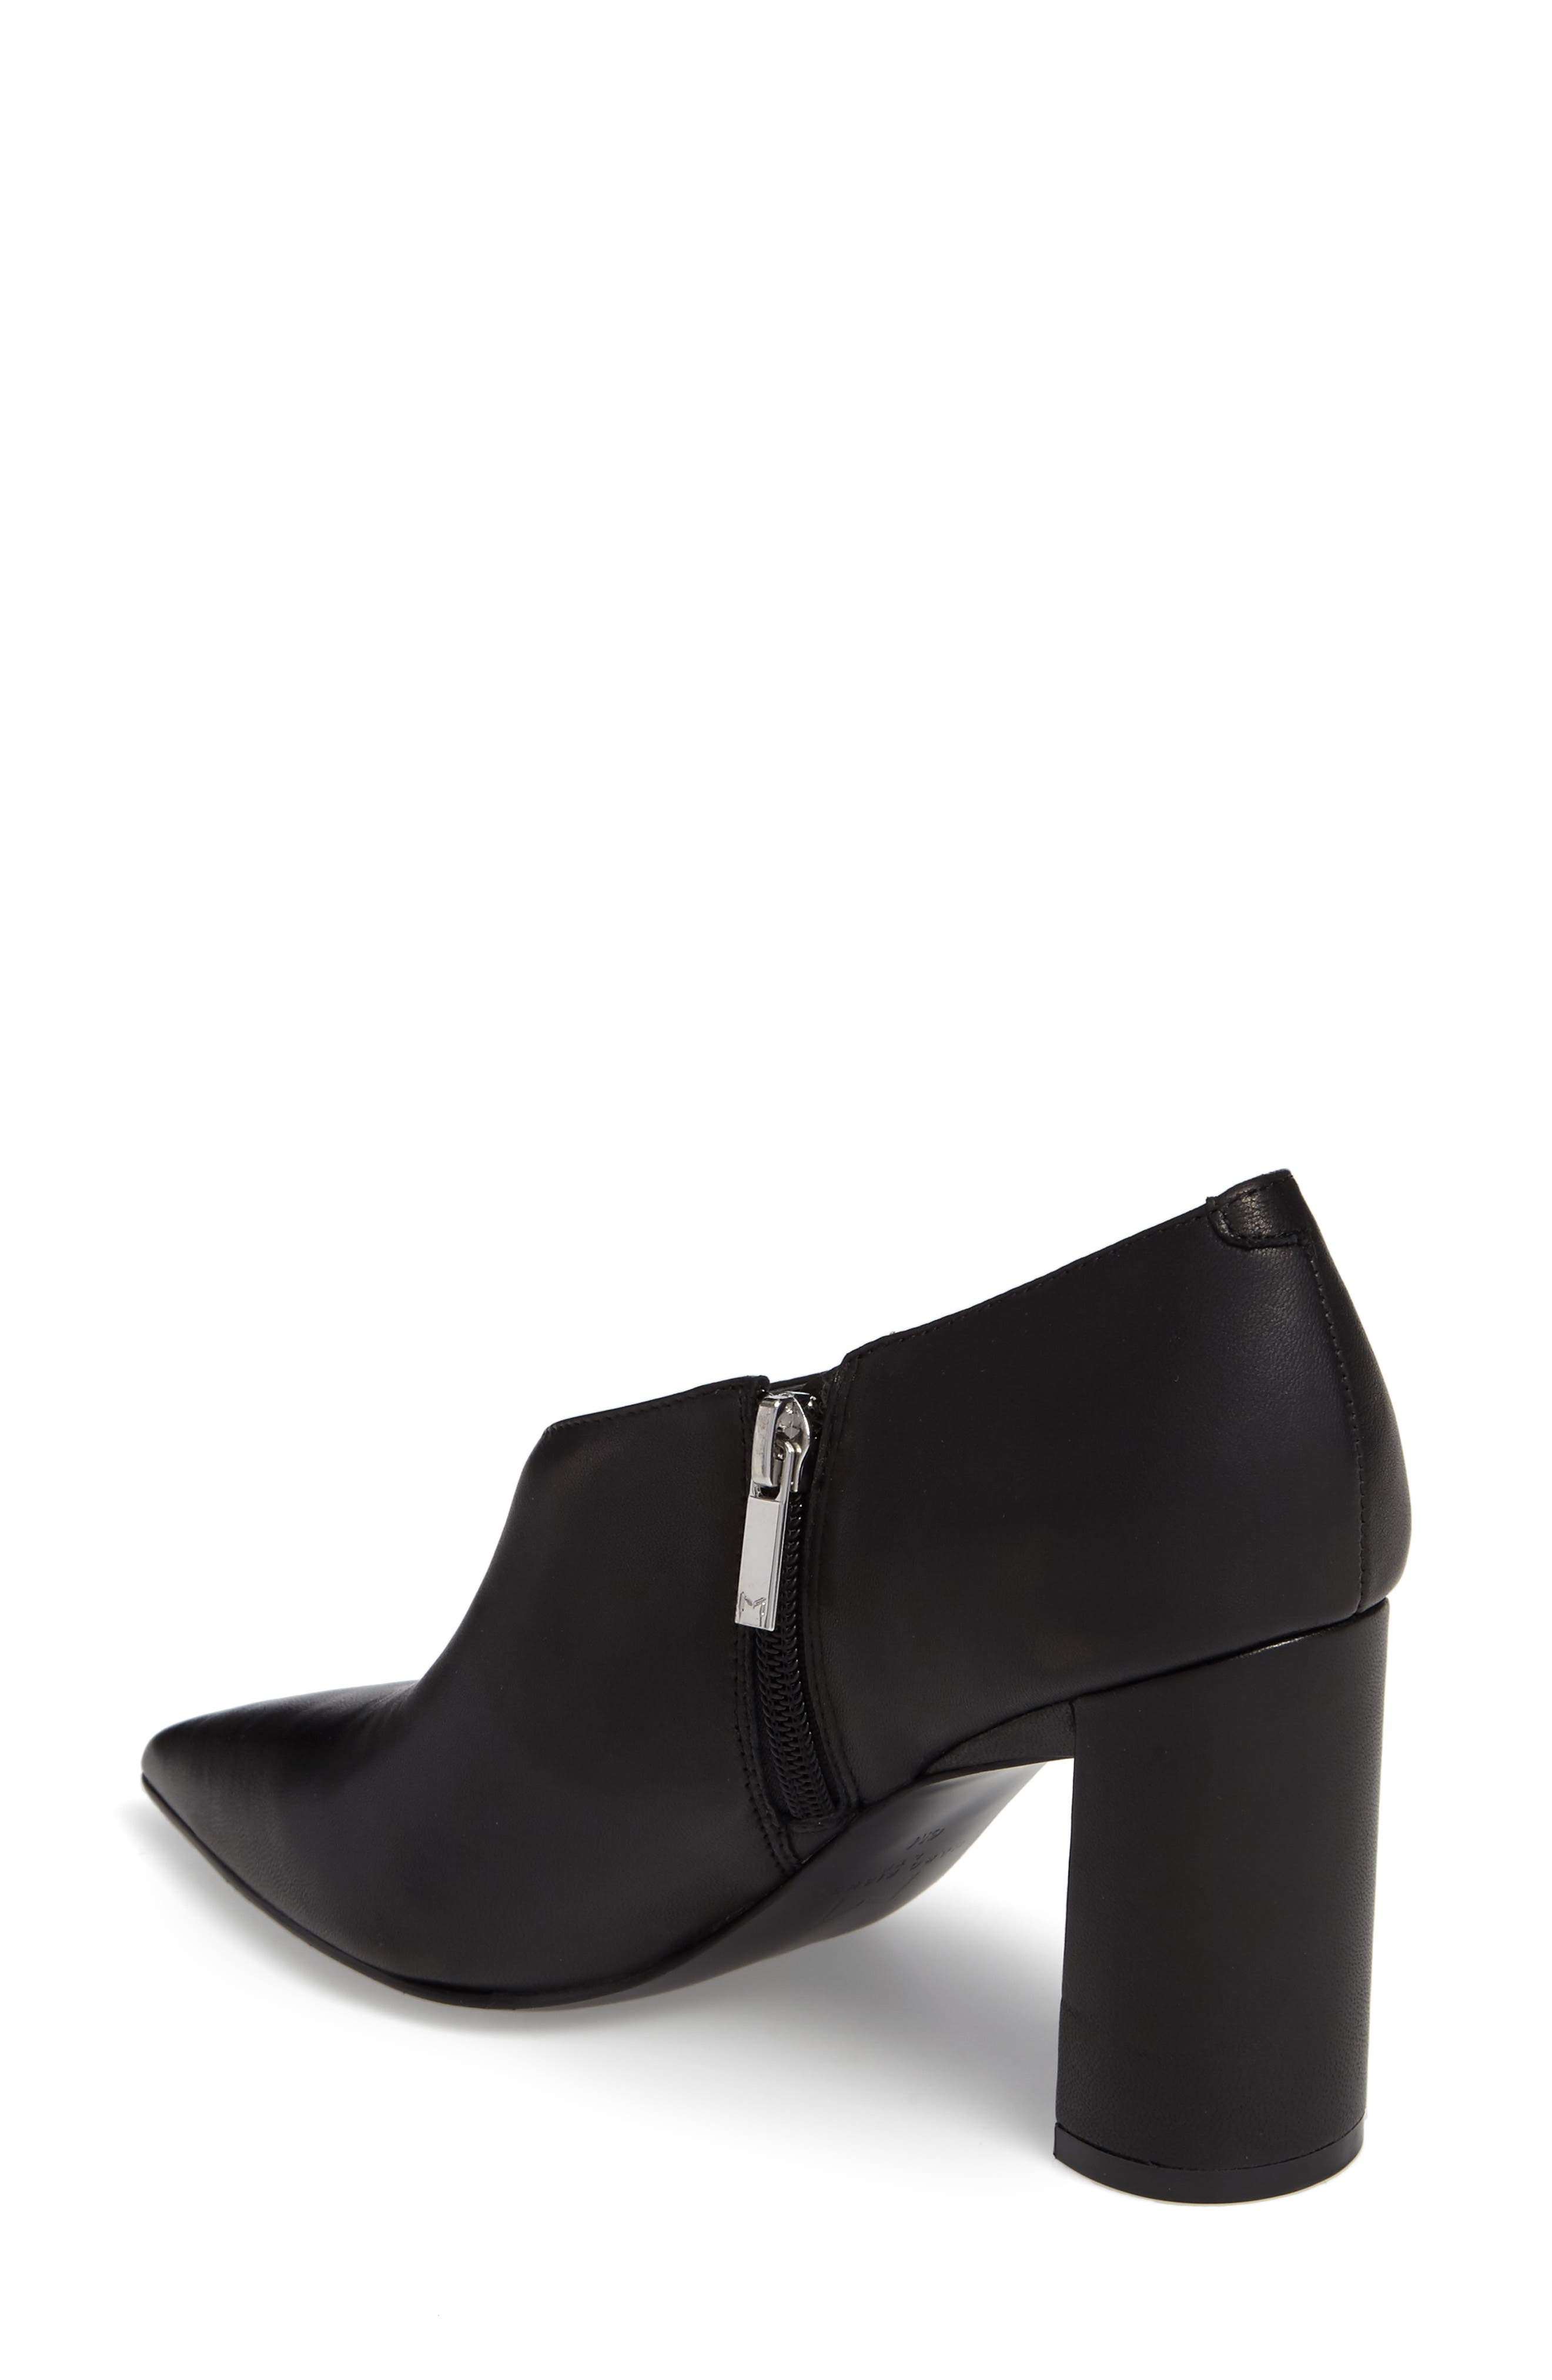 Hoda Pointy Toe Bootie,                             Alternate thumbnail 2, color,                             Black Leather